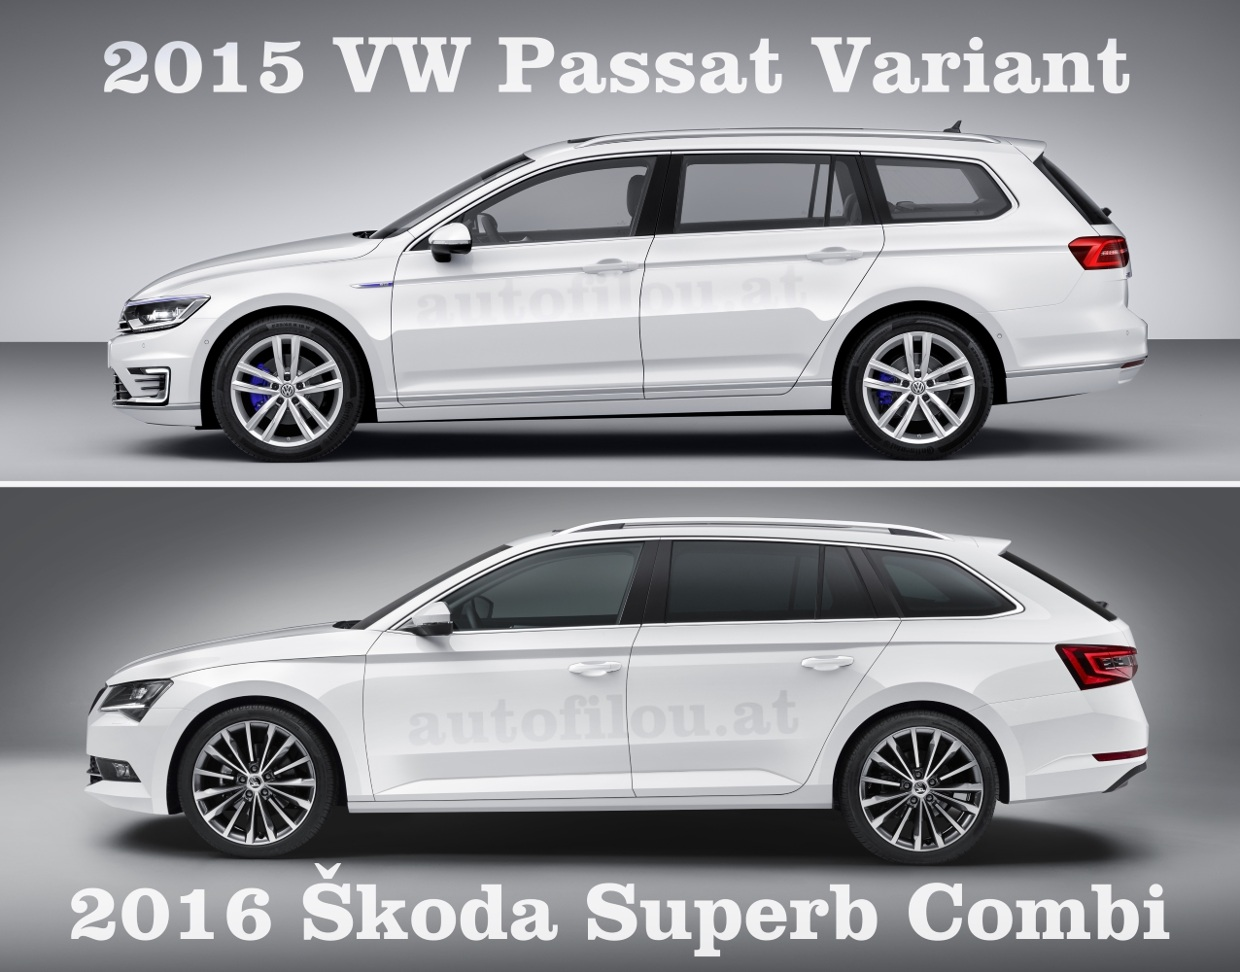 passat variant vs skoda superb combi foros de debates de coches. Black Bedroom Furniture Sets. Home Design Ideas